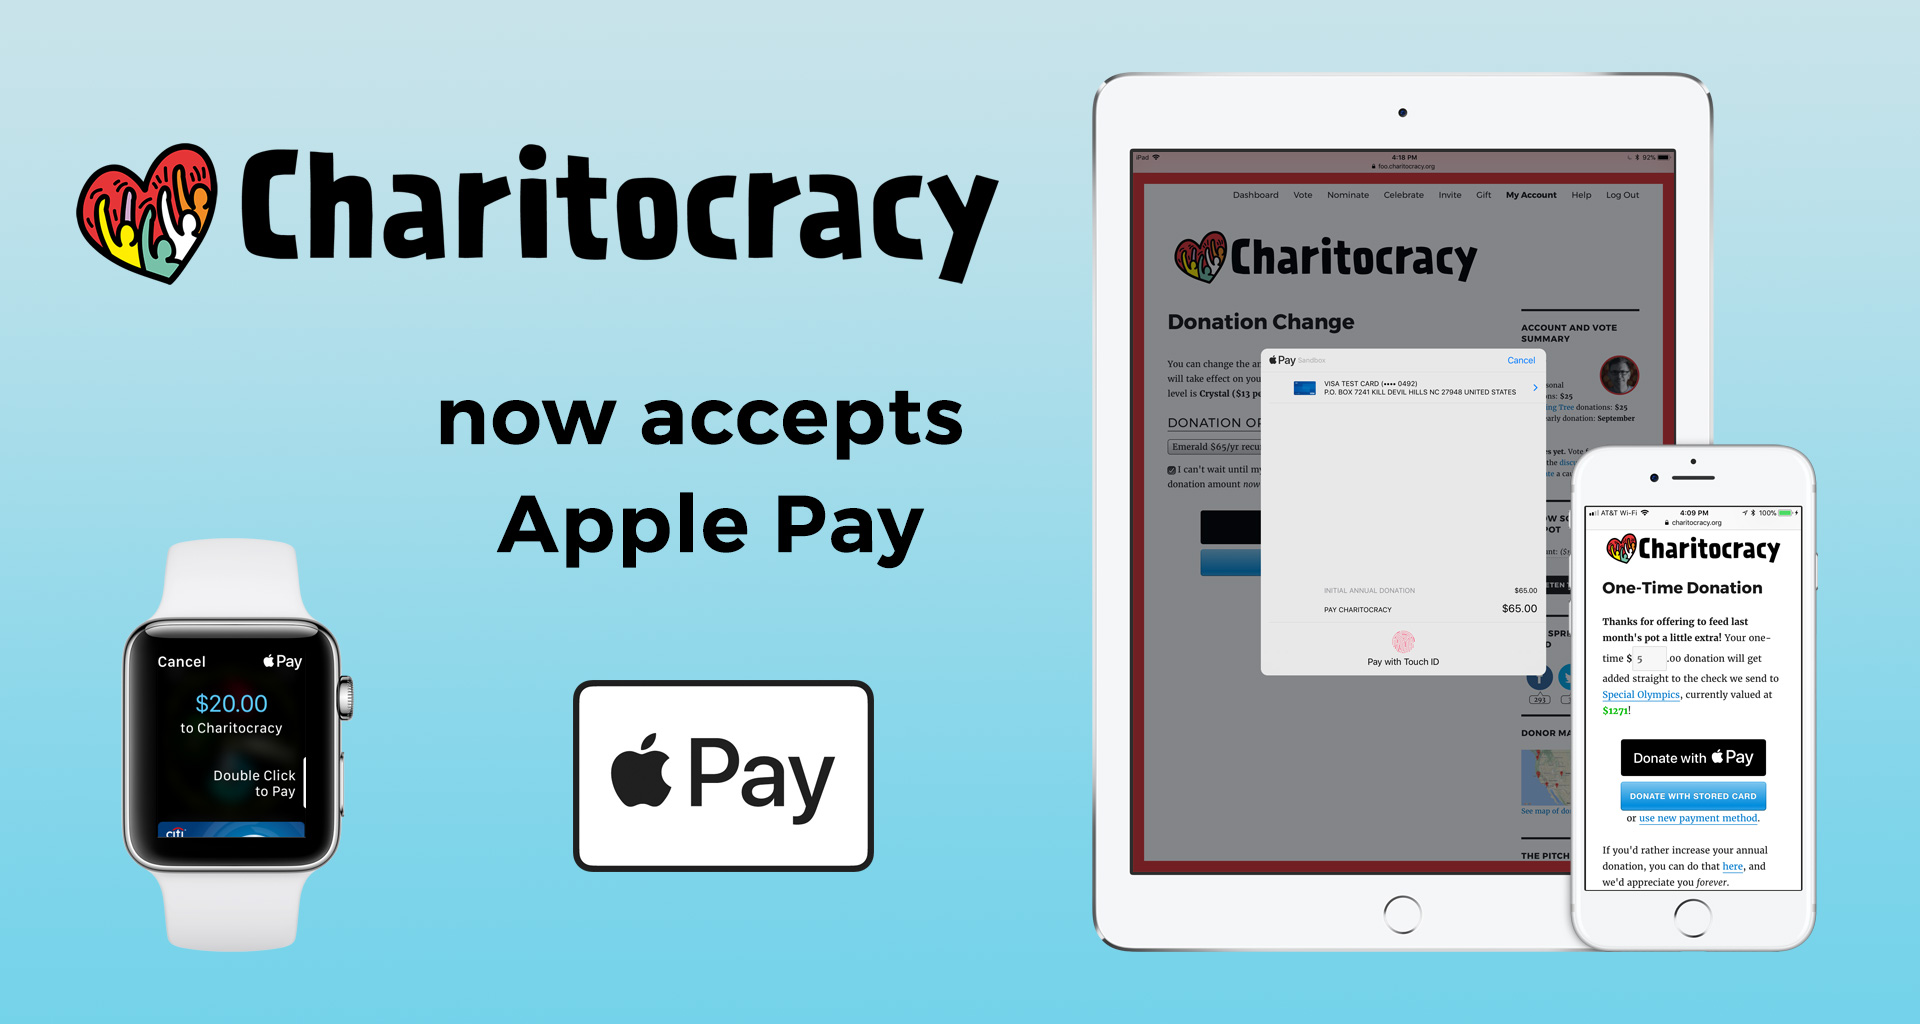 Charitocracy now accepts Apple Pay